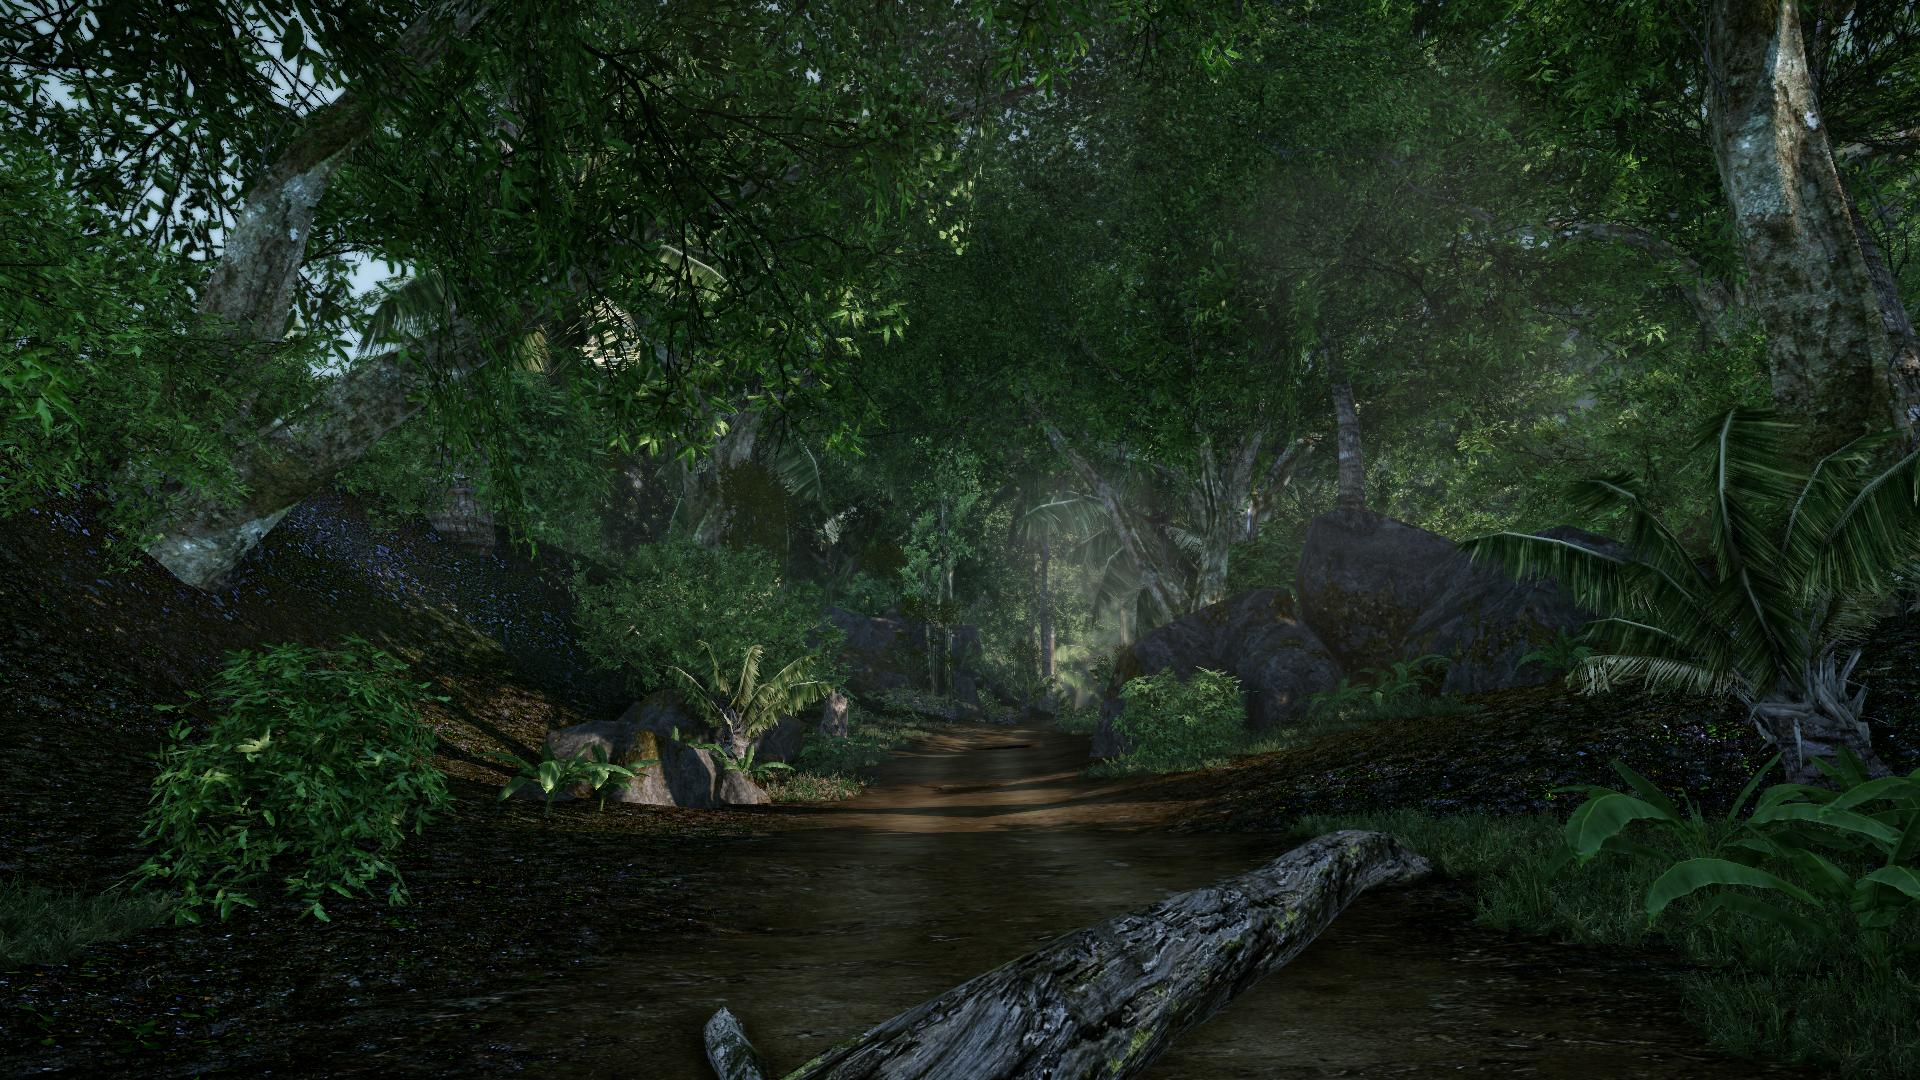 Jungle Road Image Jurassic Park Aftermath Indie Db